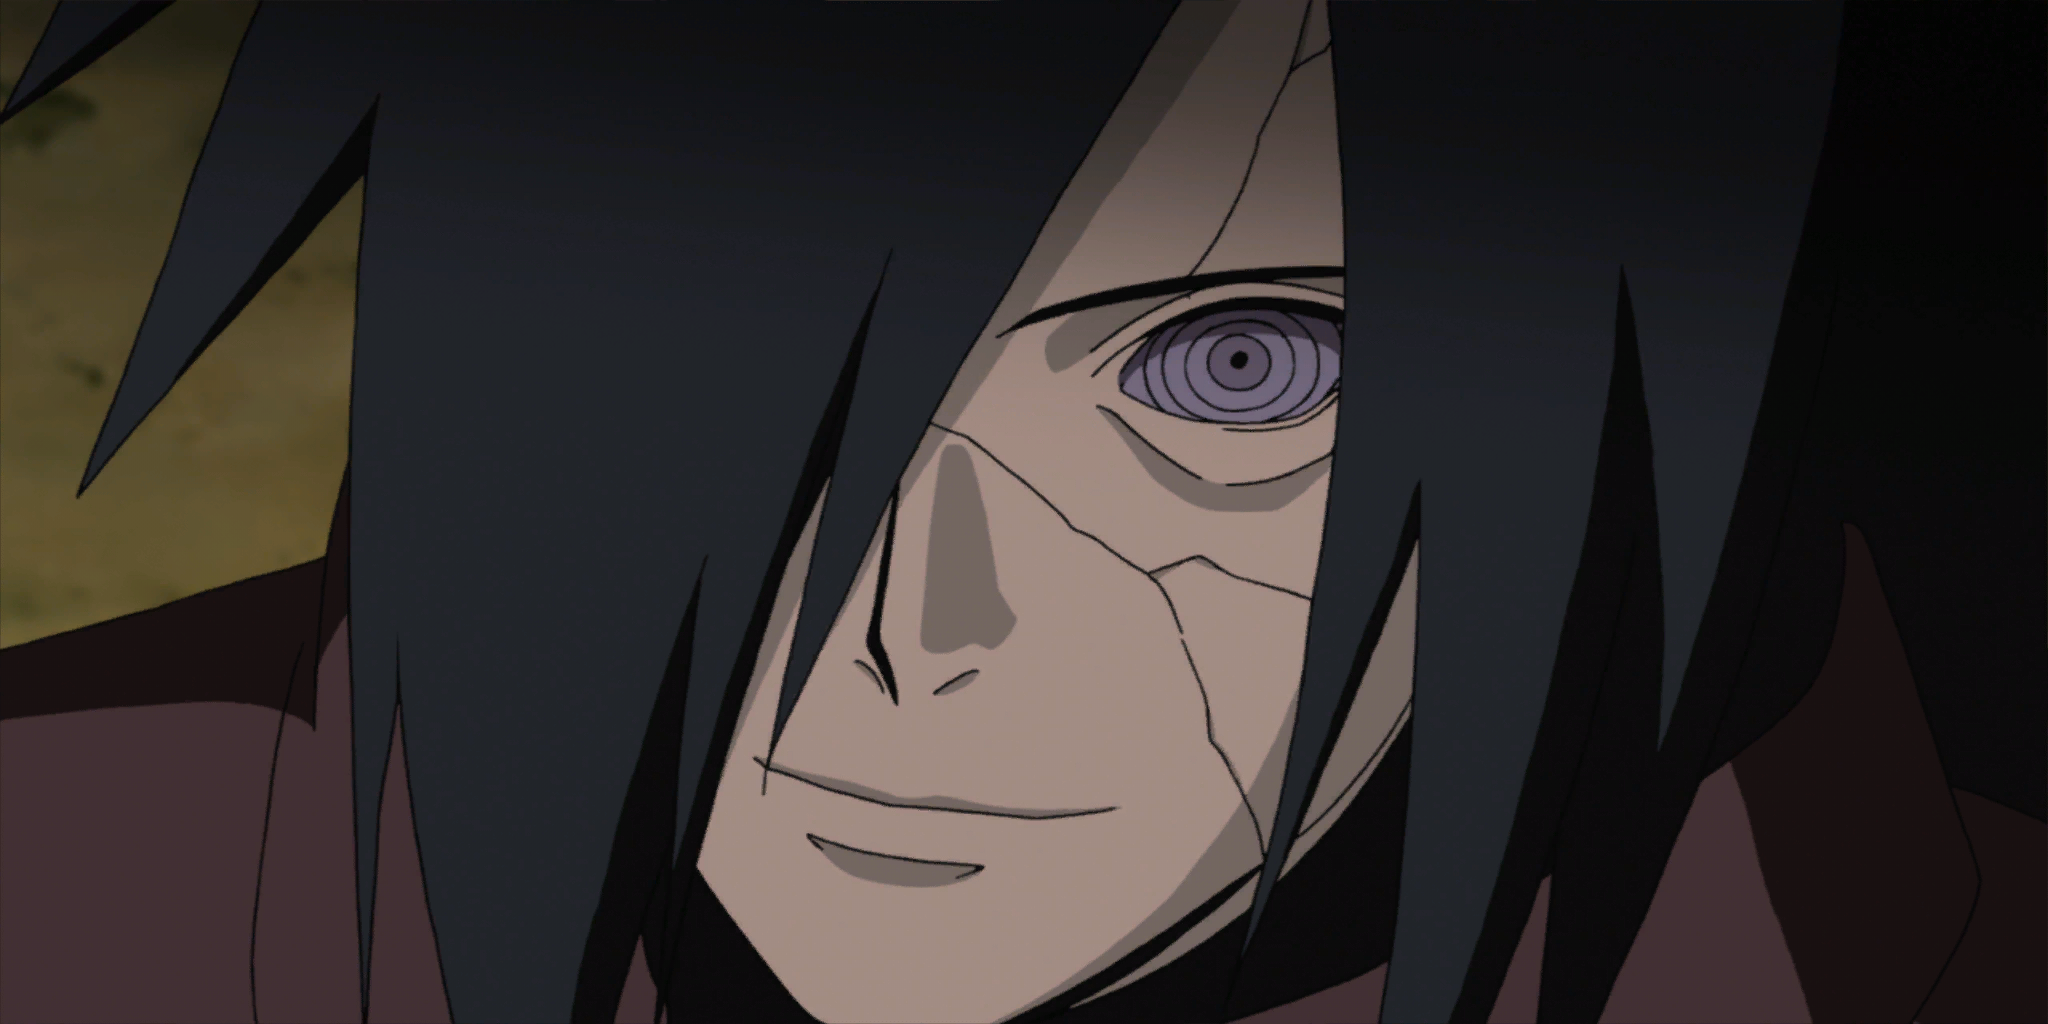 madara Wallpaper and Background Image | 2048x1024 | ID ...